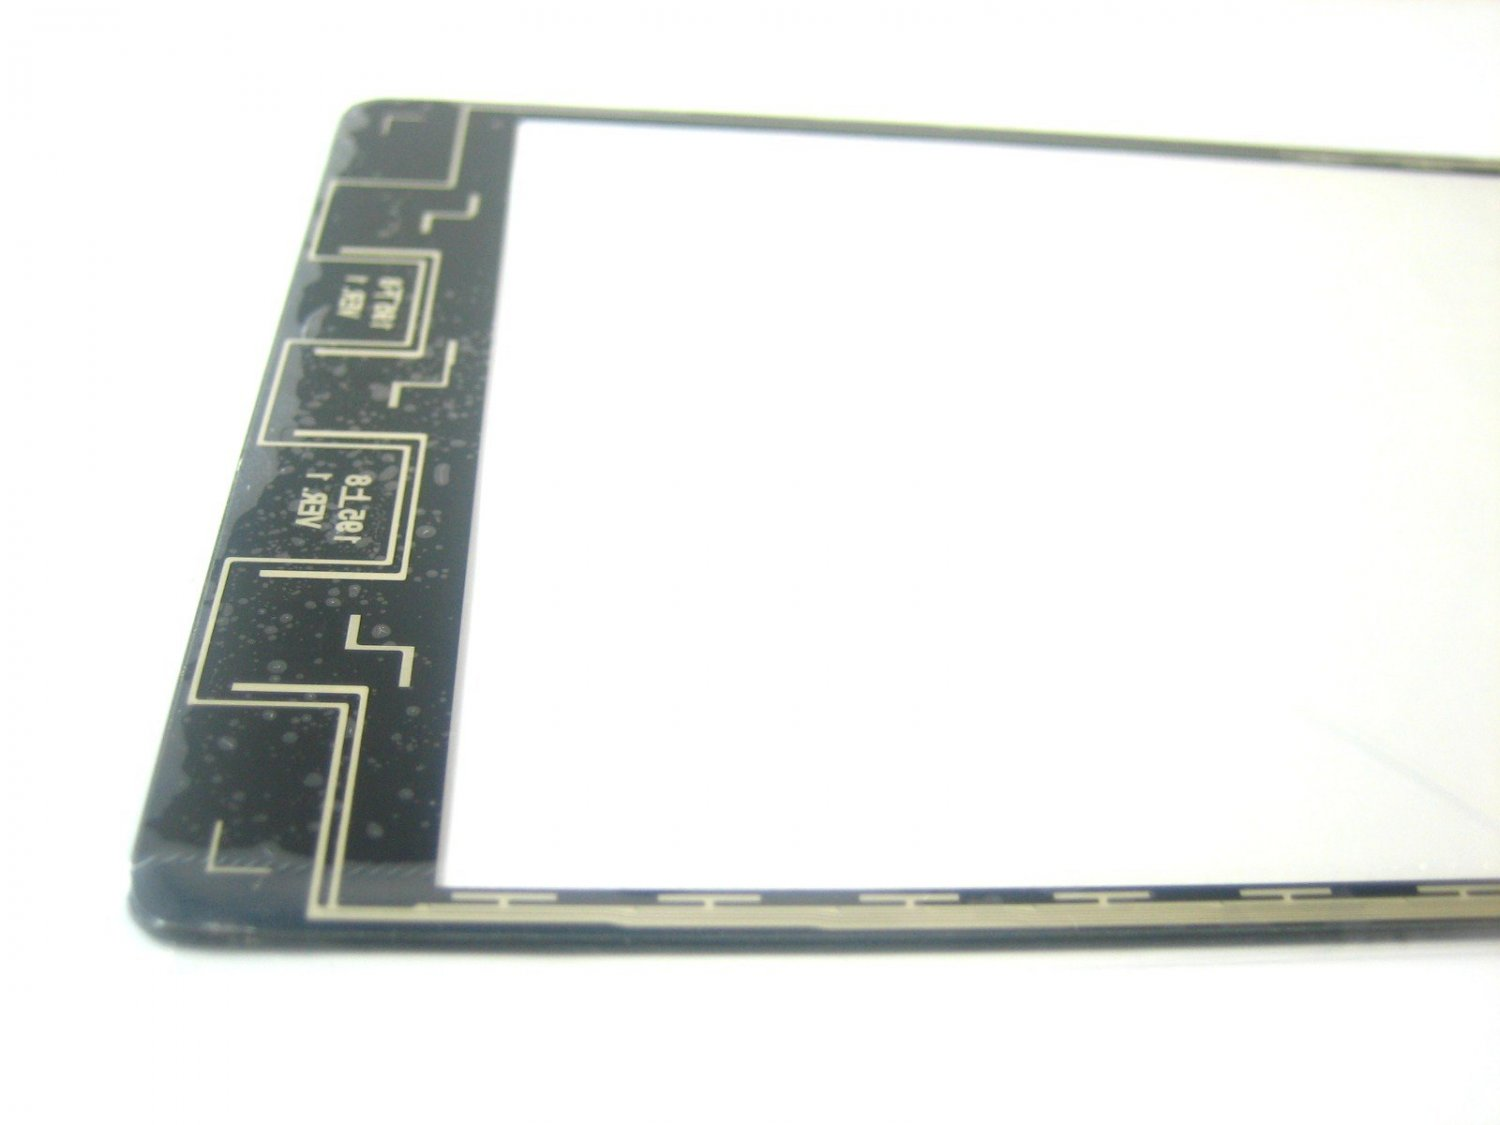 Touch Screen Digitizer Glass Repair Parts for Lenovo Vibe Z K910 04527-MnTSK910nnnnnn